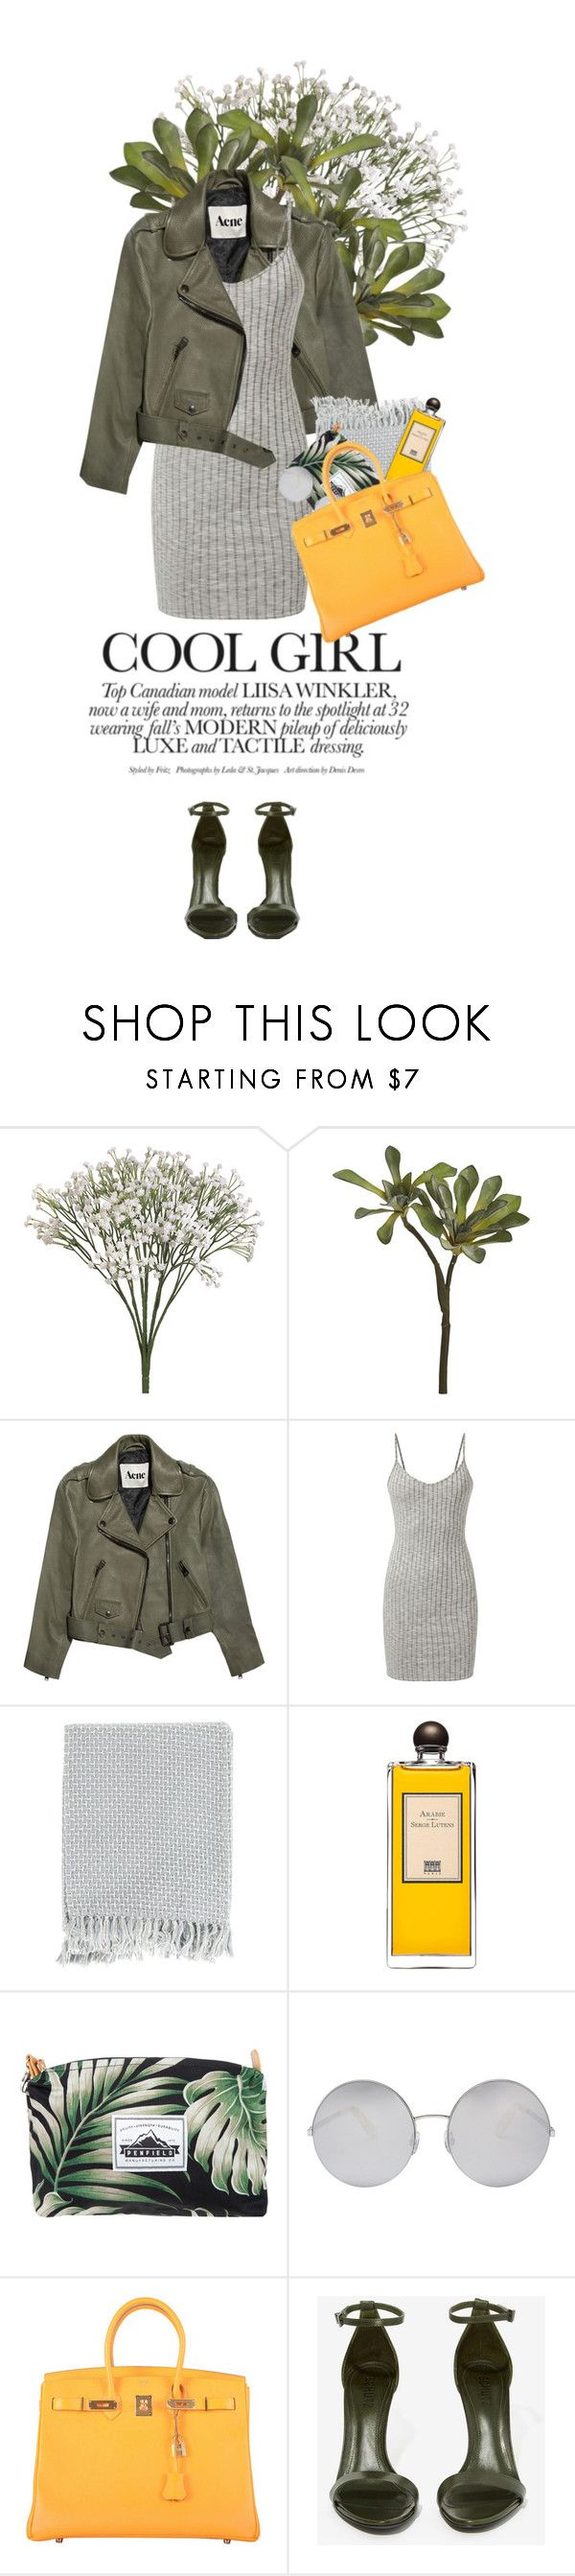 """""""girls@ - Joey Purp, Chance the Rapper"""" by rosa-loves-skittles ❤ liked on Polyvore featuring CB2, Acne Studios, Surya, Serge Lutens, Penfield, Victoria Beckham, Hermès and Schutz"""